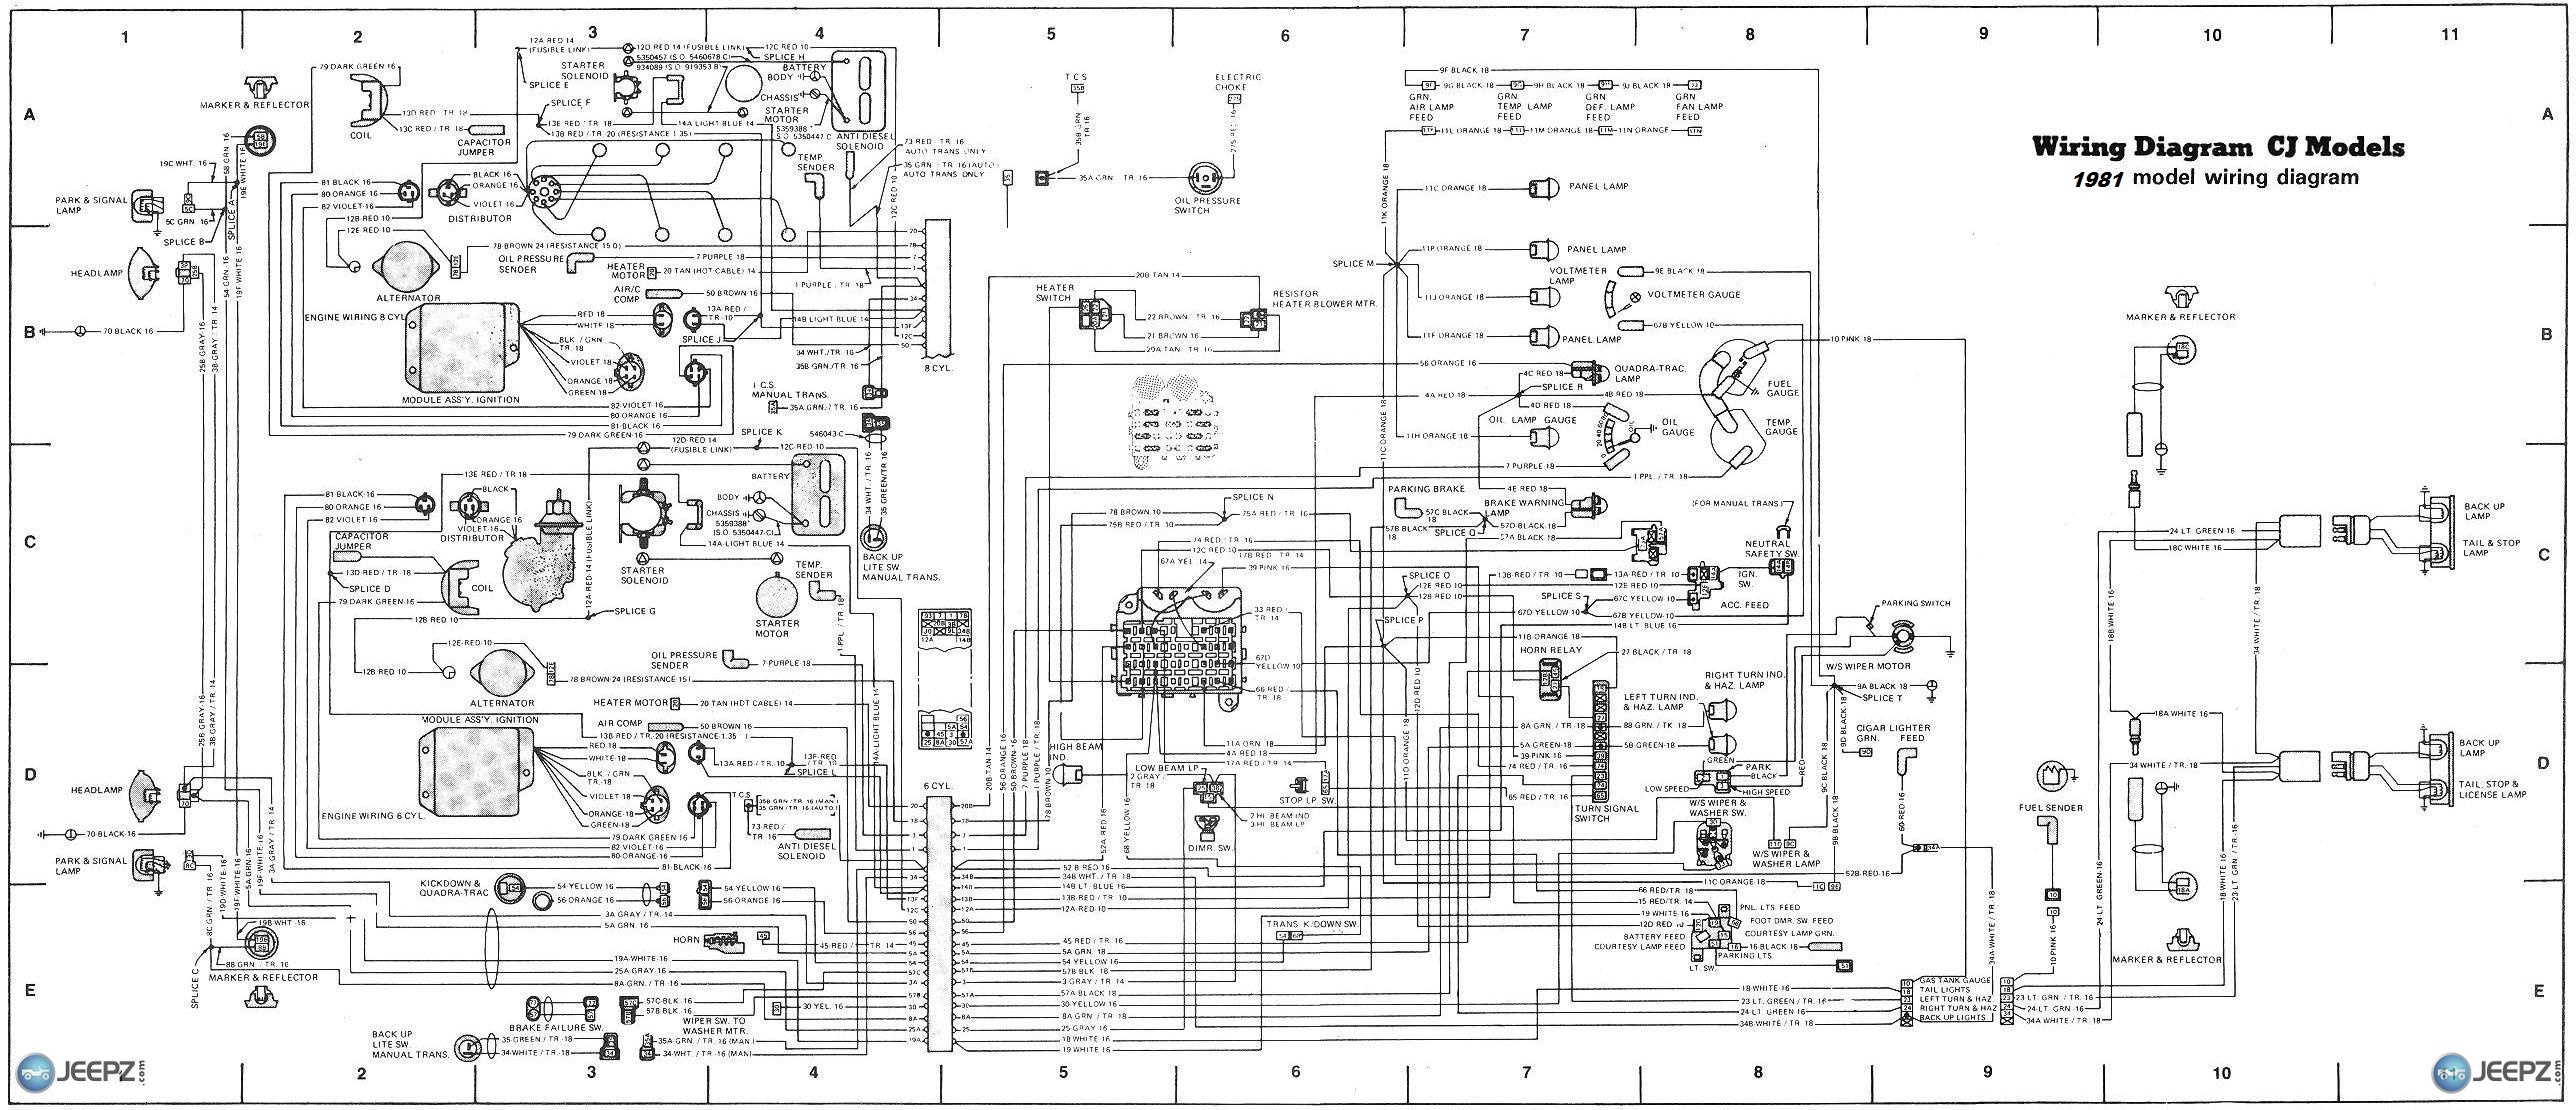 1967 Jeep Wiring Diagram Diagrams Box 1975 Cadillac 1981 Cj7 2012 Dodge Charger Stereo